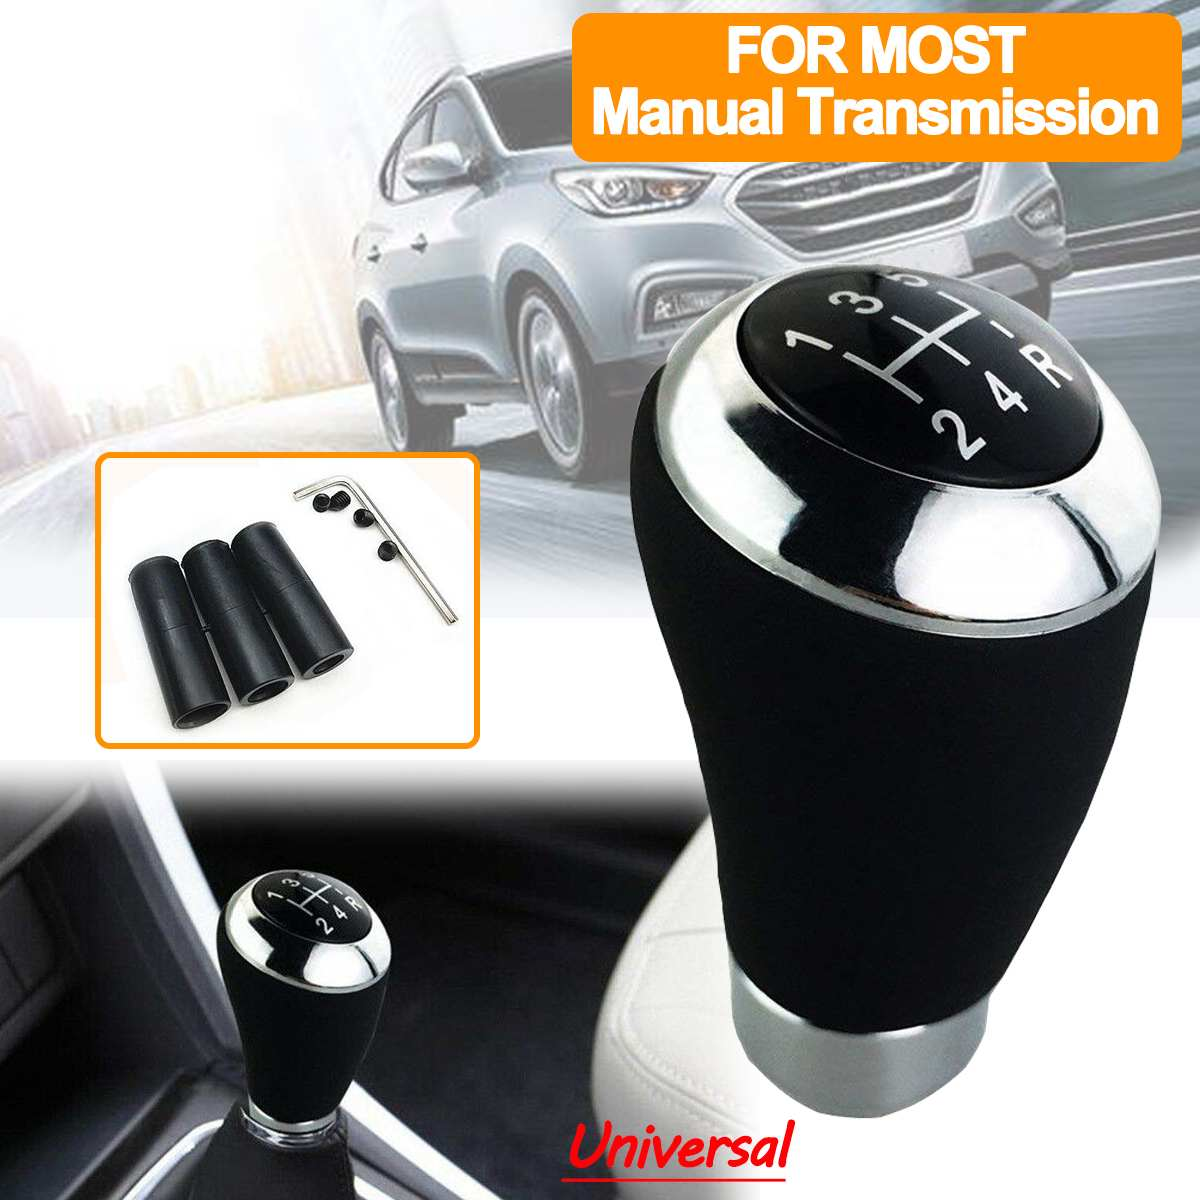 Universal M10 X 1.5 Car Manual Handle Gear Stick Shift Shifter Lever Knob